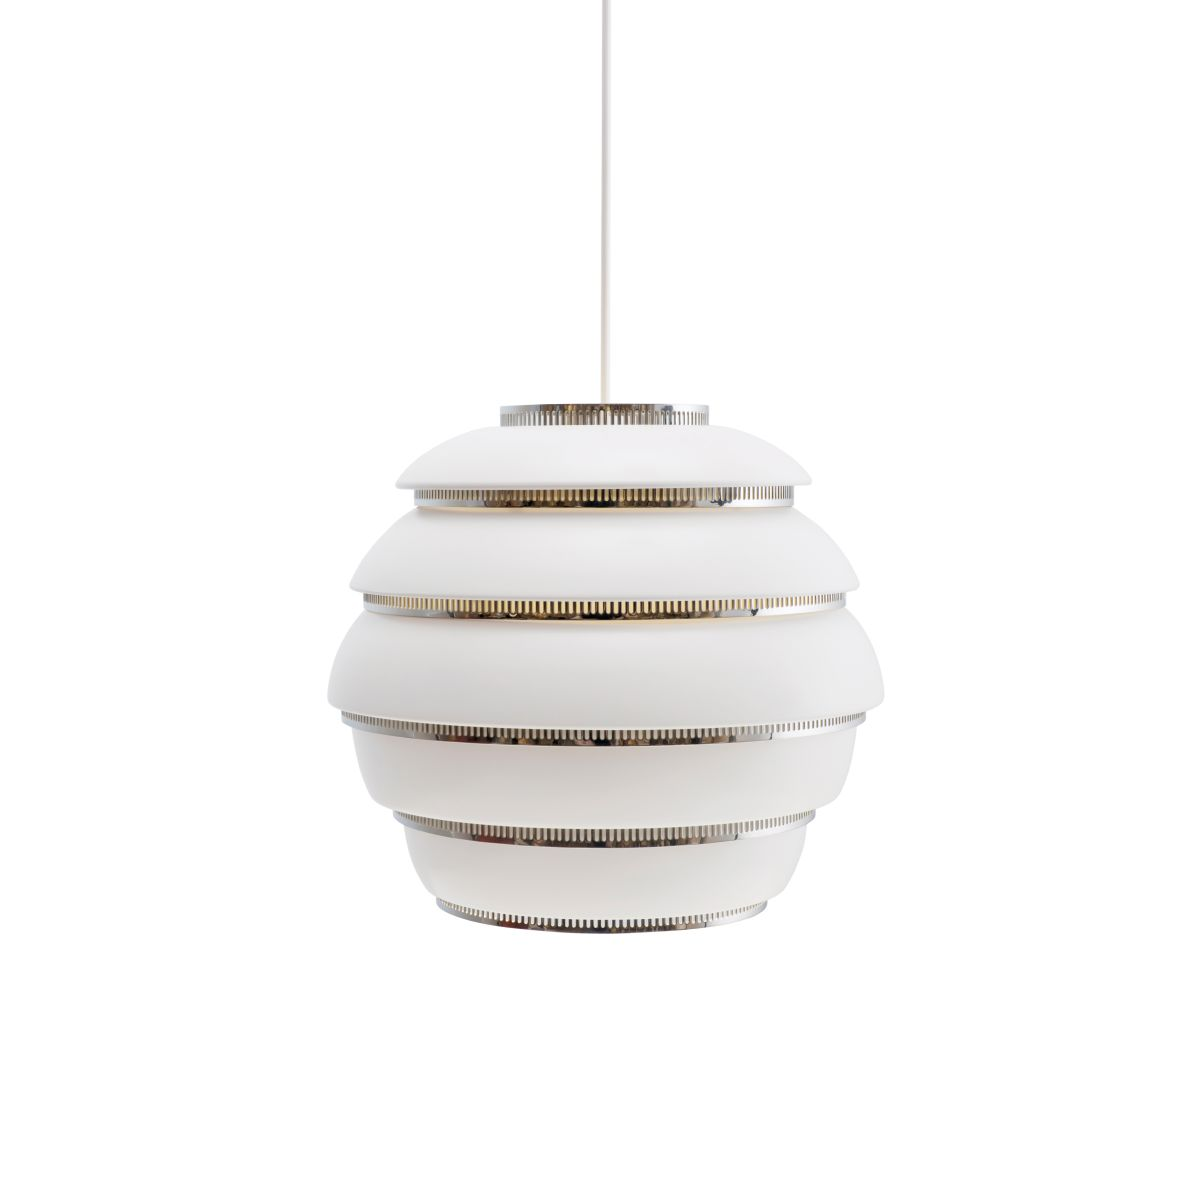 Pendant-Light-A331-_Beehive_-Chrome_Web2-2410916